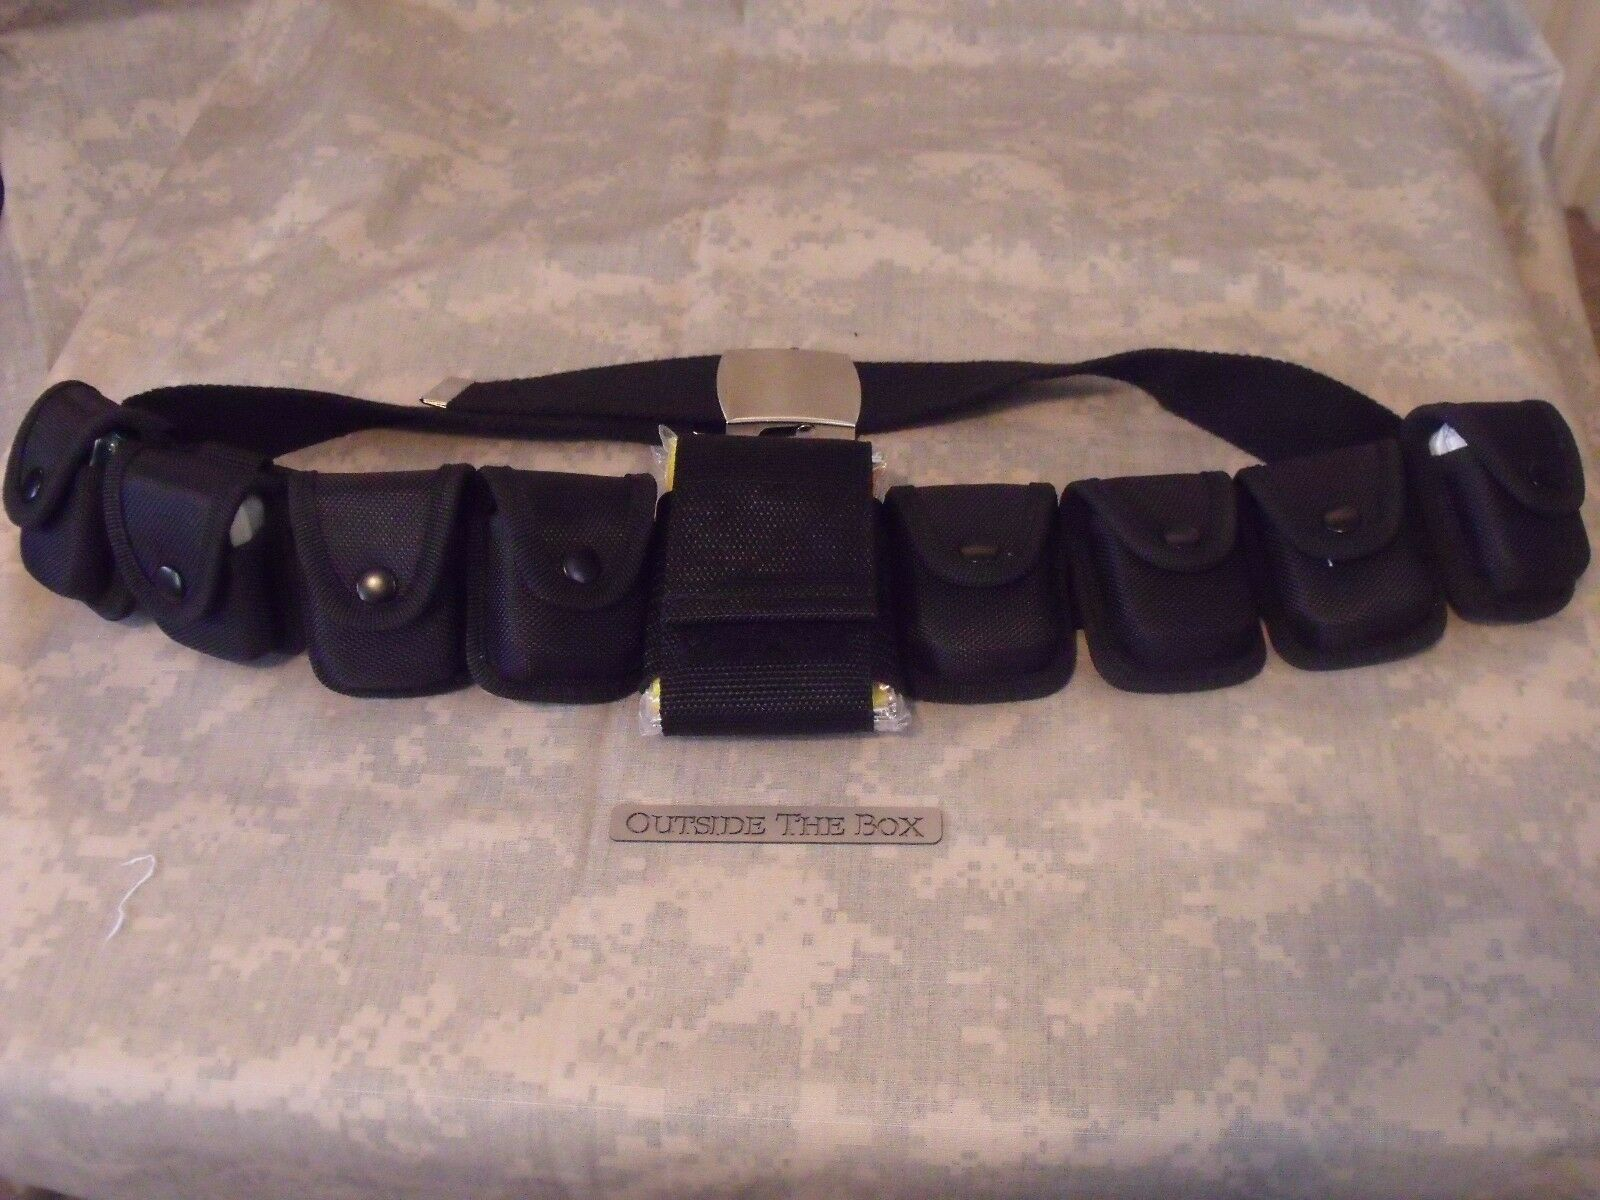 Emergency Survival    Utility Belt Survival Kit System   BRAND nouveau ITEM